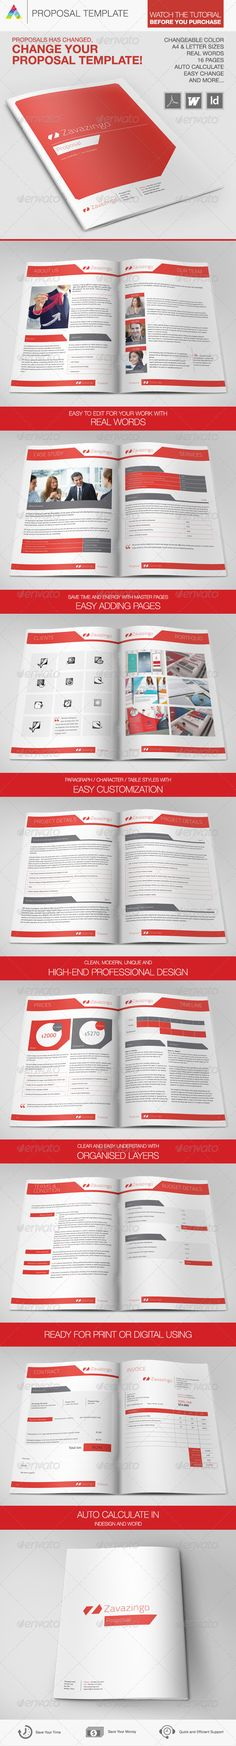 Proposal Template Proposal templates, Proposals and Business - free business proposal template download